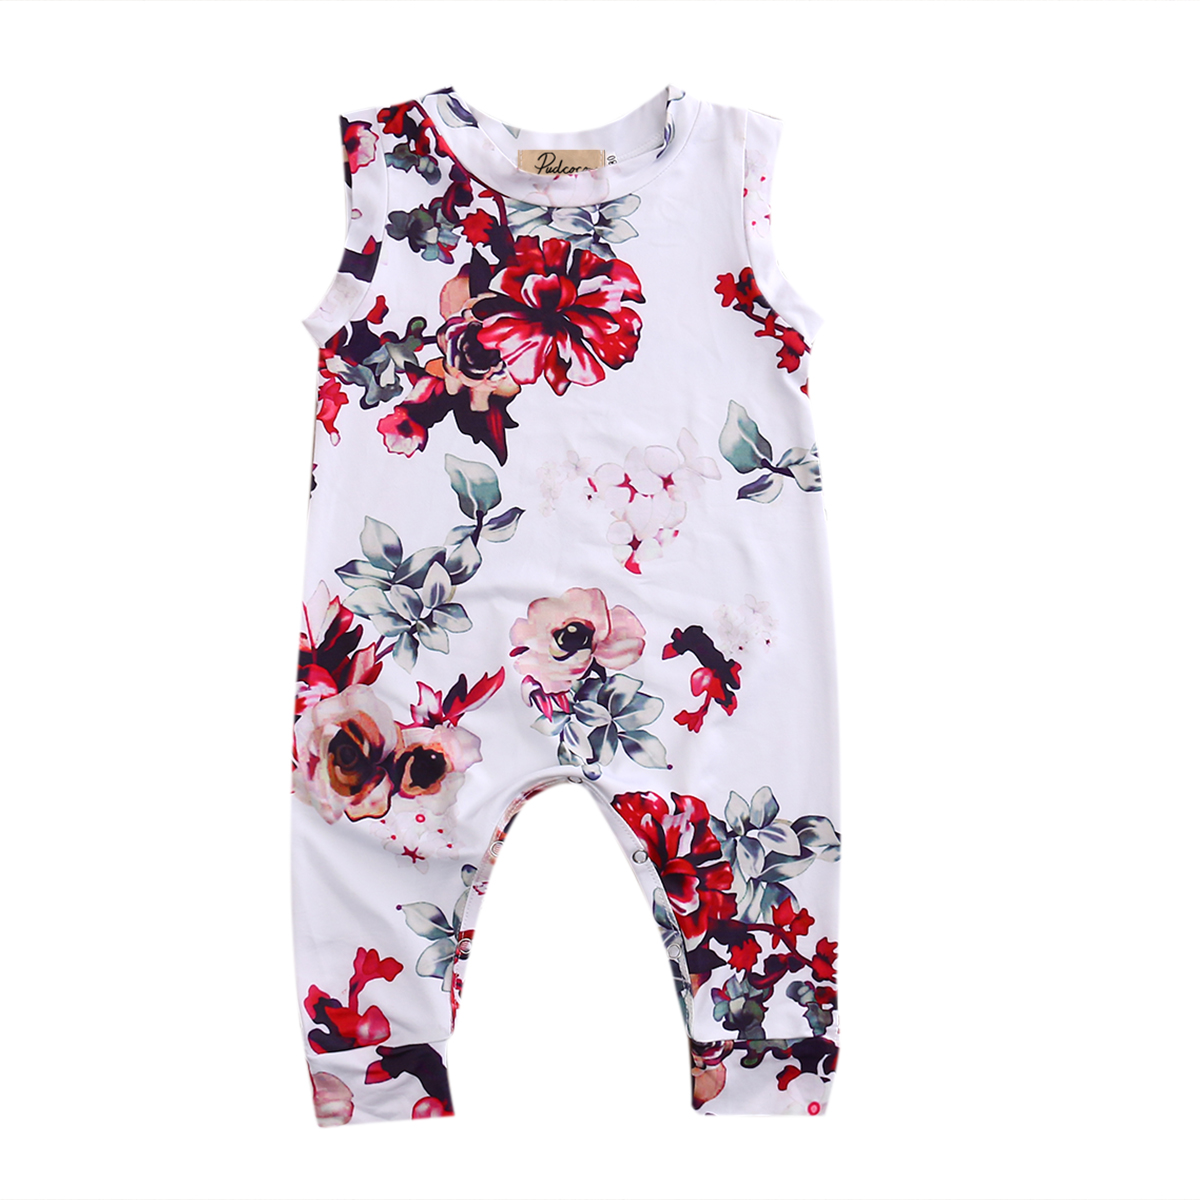 Summer Infant Newborn Kids Summer Toddler Baby Boys Girls Romper Outfits Sunsuit Jumpsuit Cotton Clothes summer newborn infant baby girl romper short sleeve floral romper jumpsuit outfits sunsuit clothes